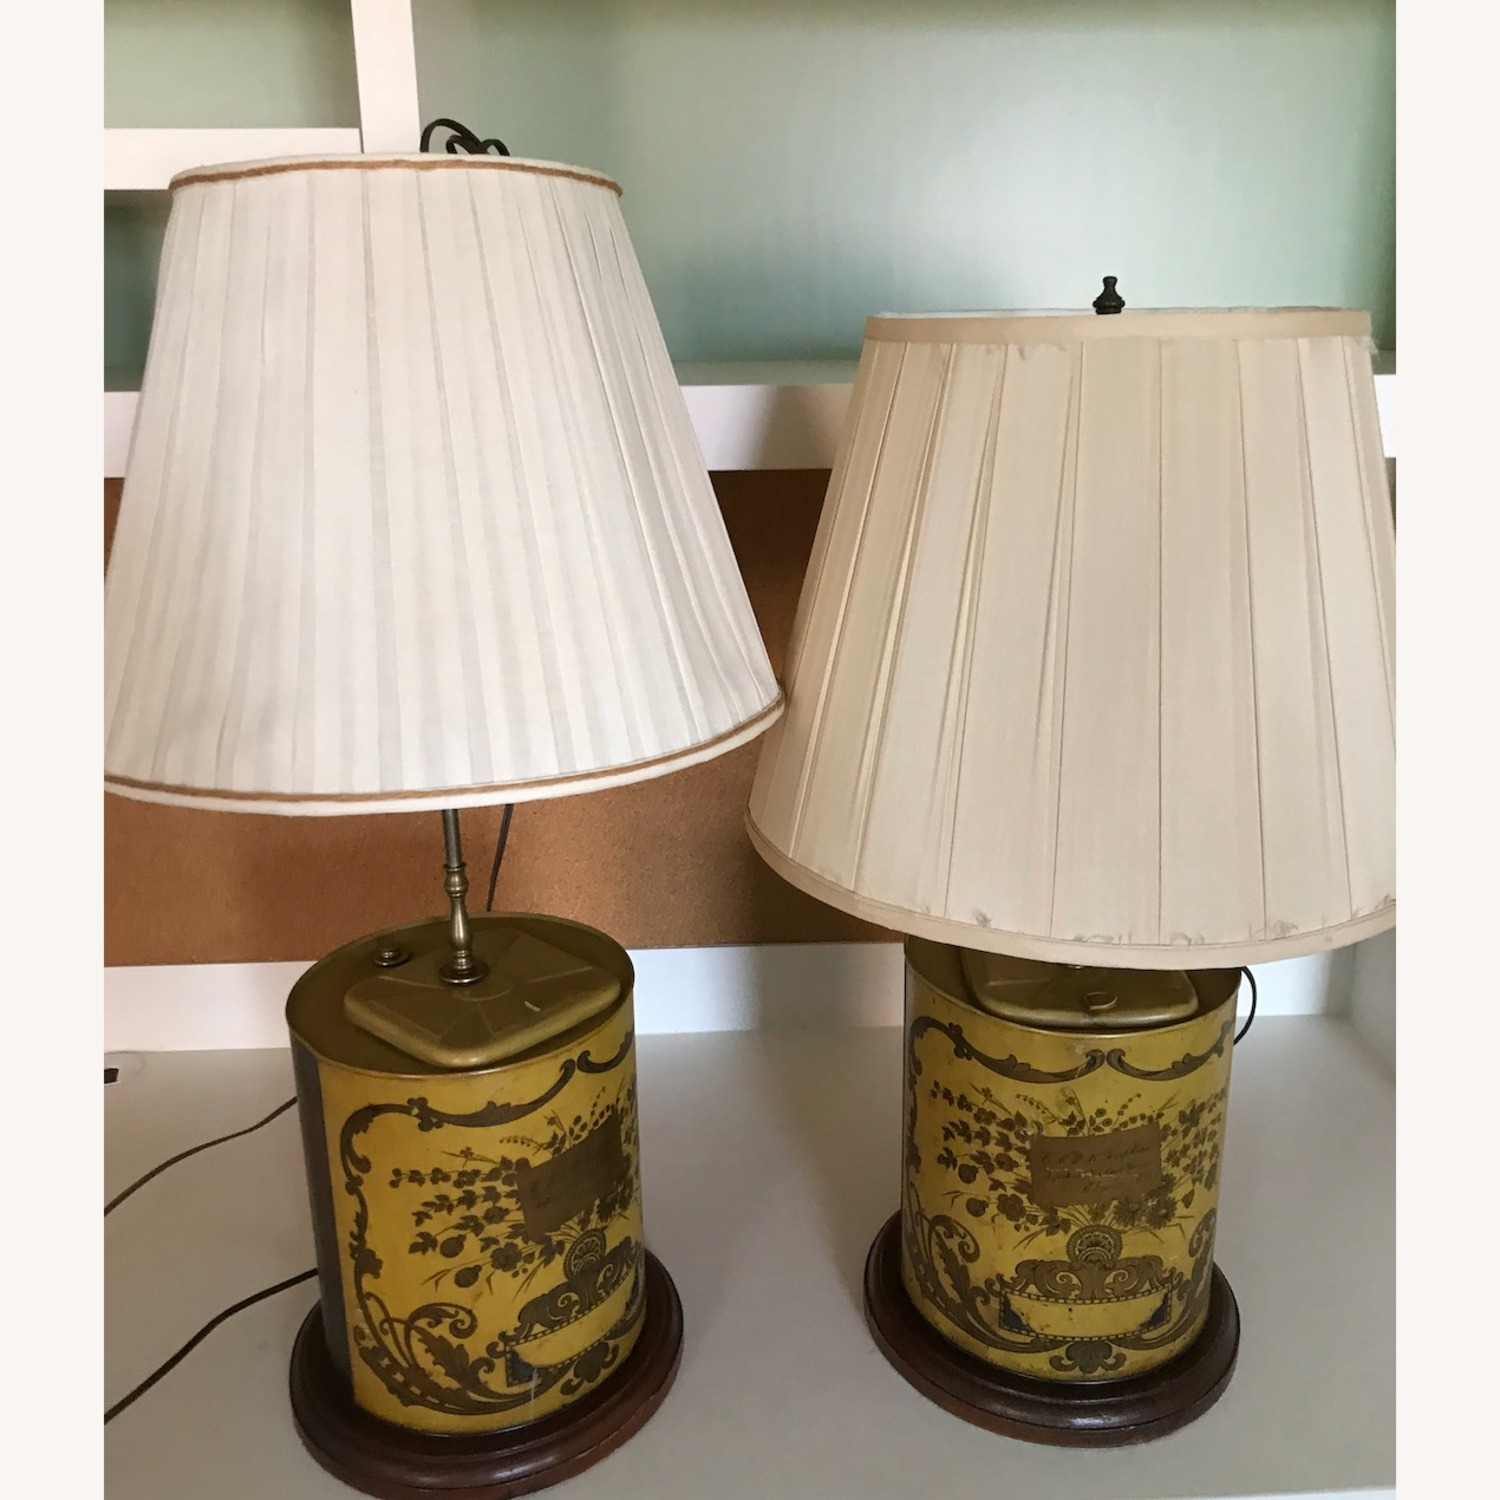 Vintage Oil Can Lamps With Shades